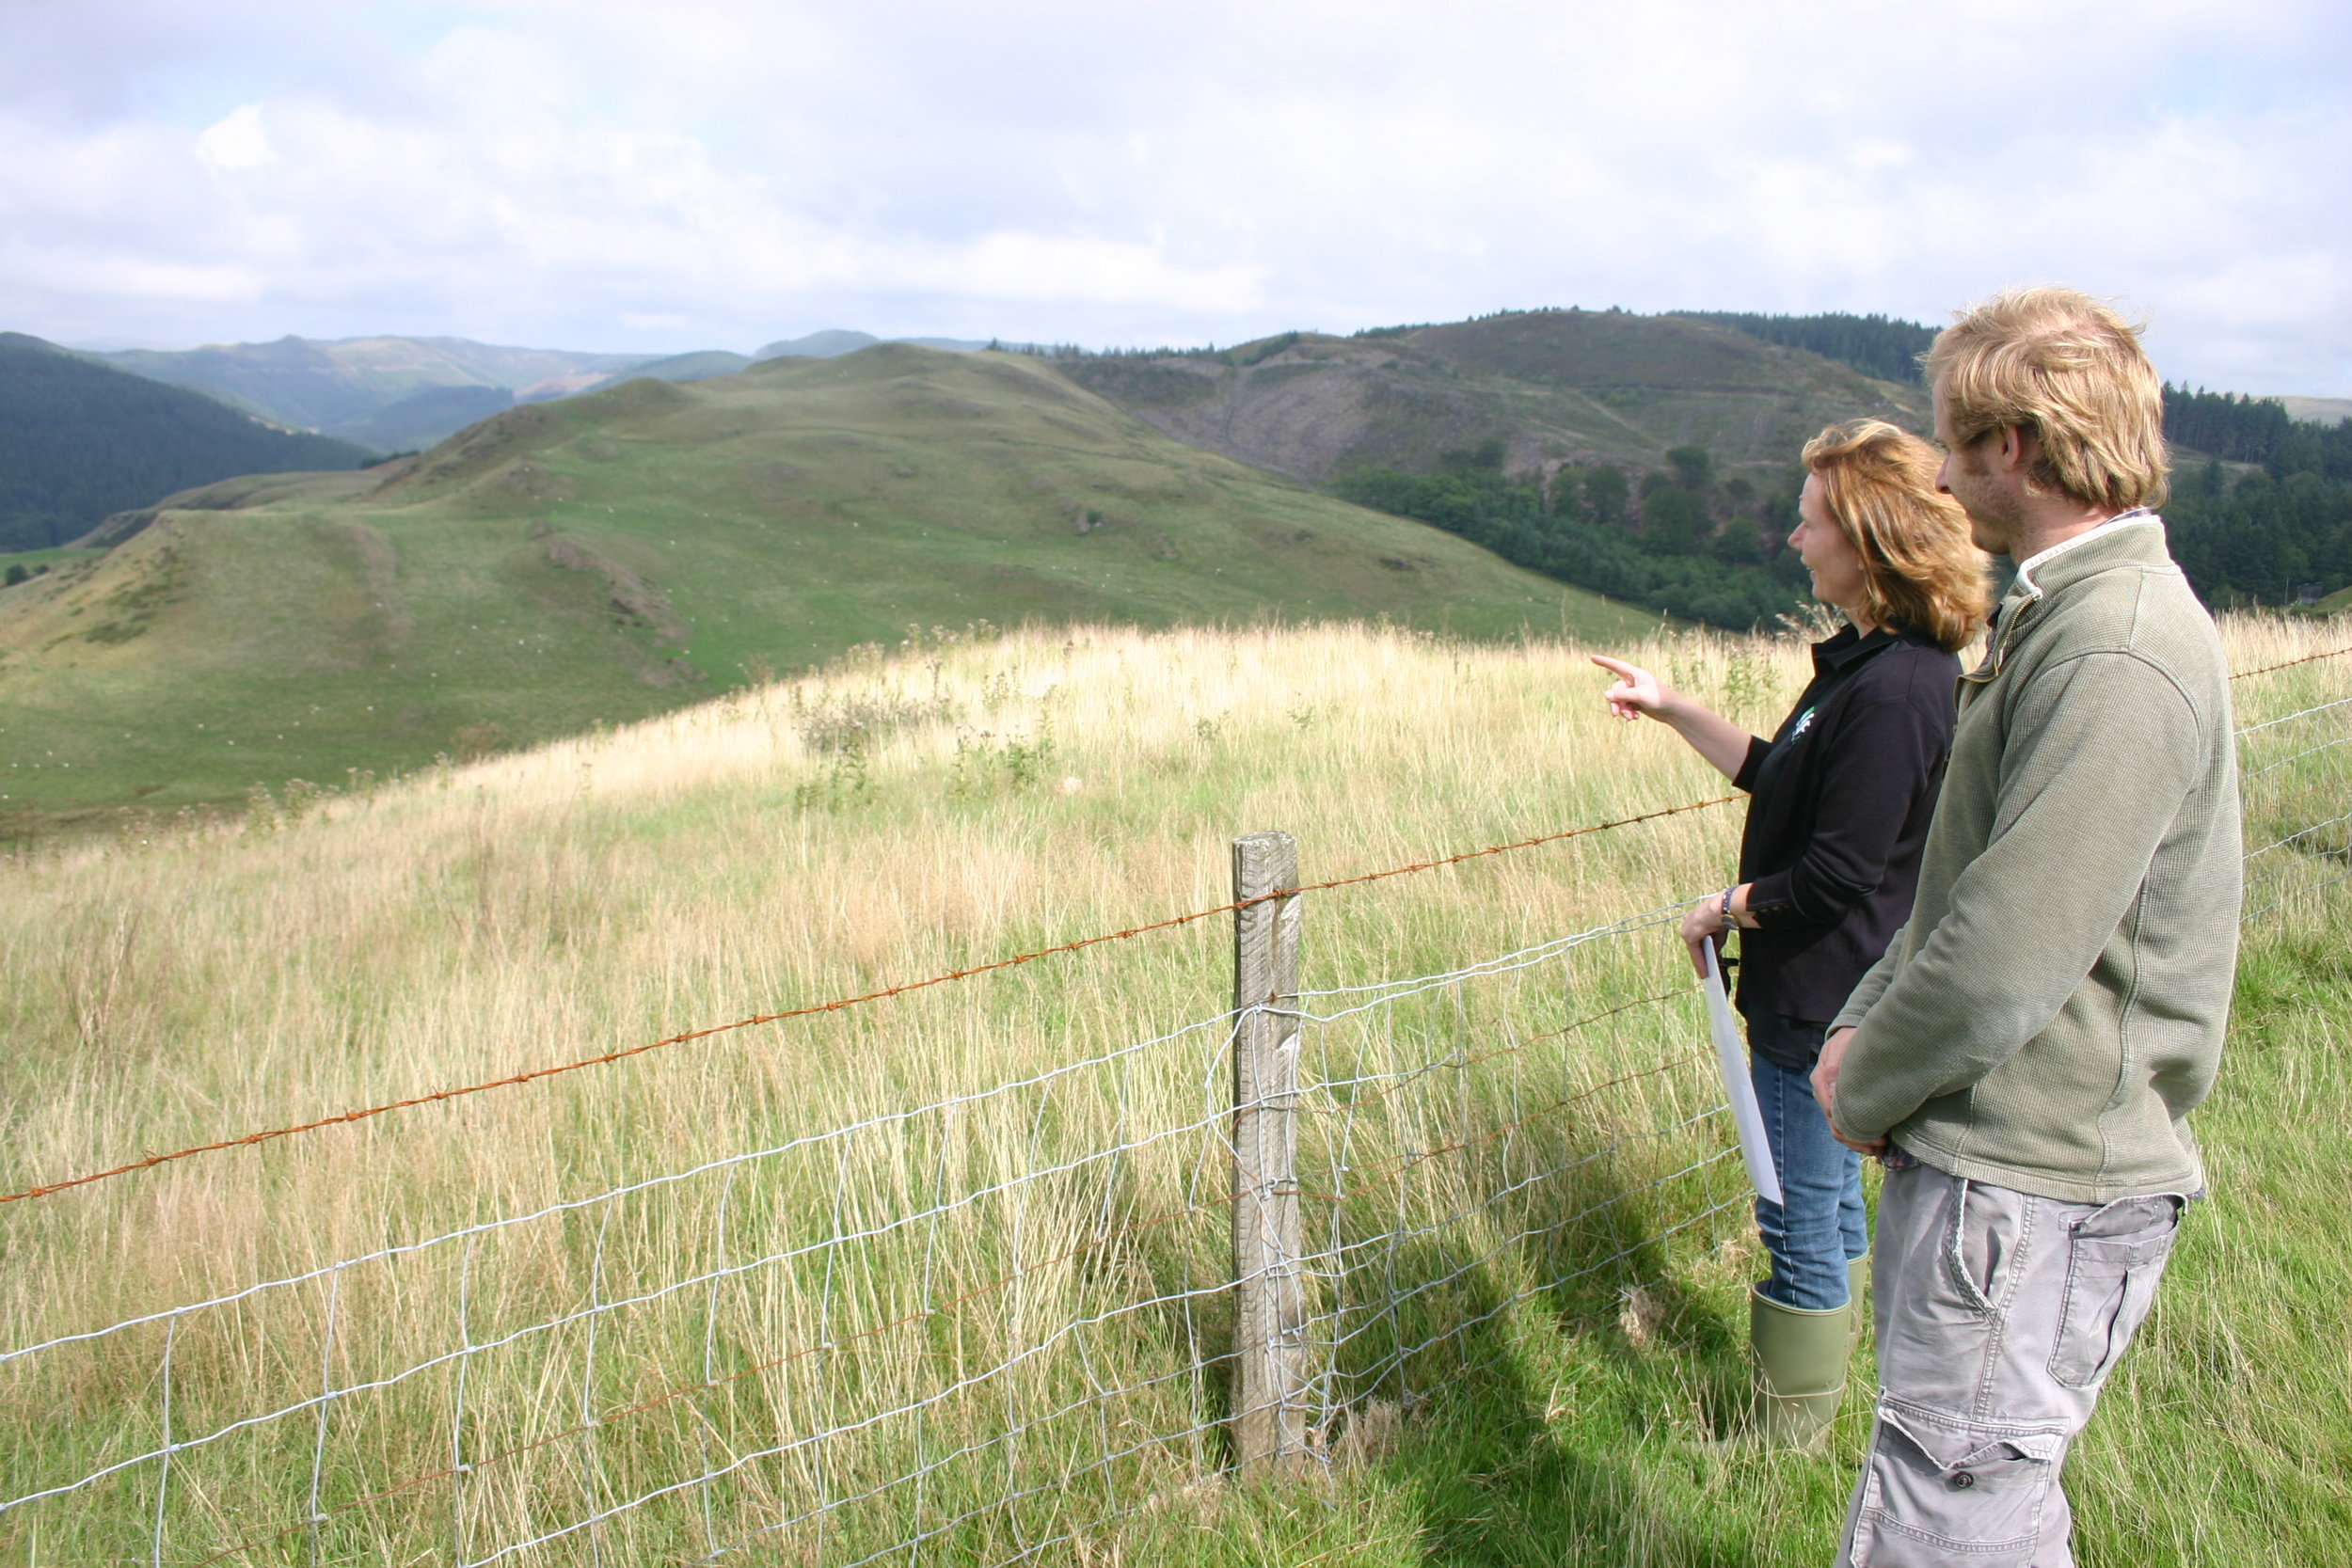 mariecia fraser was the invited speaker at our april webinar on the brignant lte in pwllpeiran, mid-wales